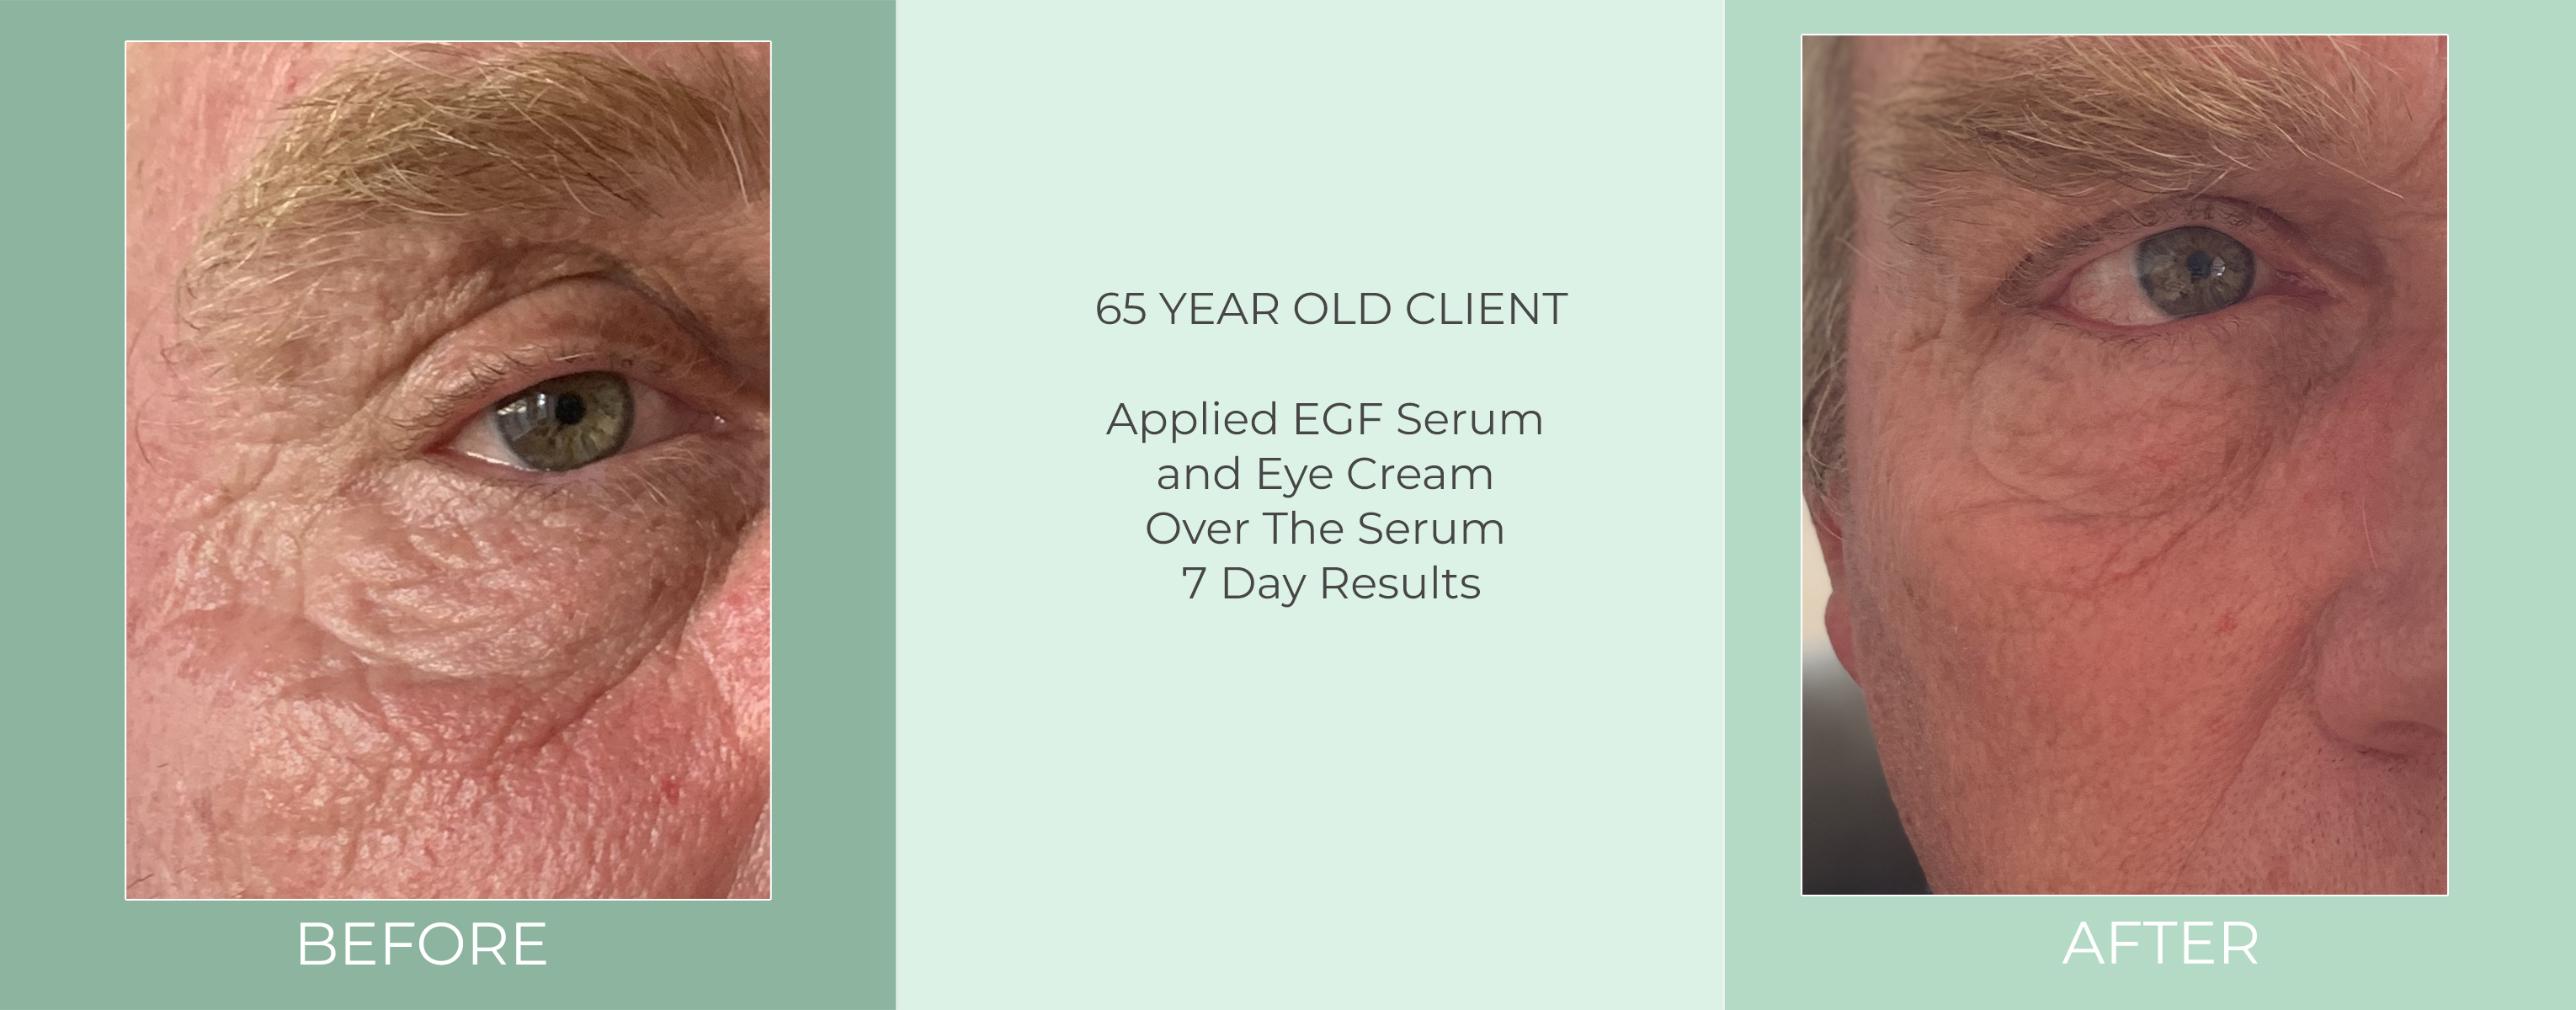 65-yrs.-applied-egf-serum-and-eye-cream-over-the-serum-7-day-results-before-and-after.jpg